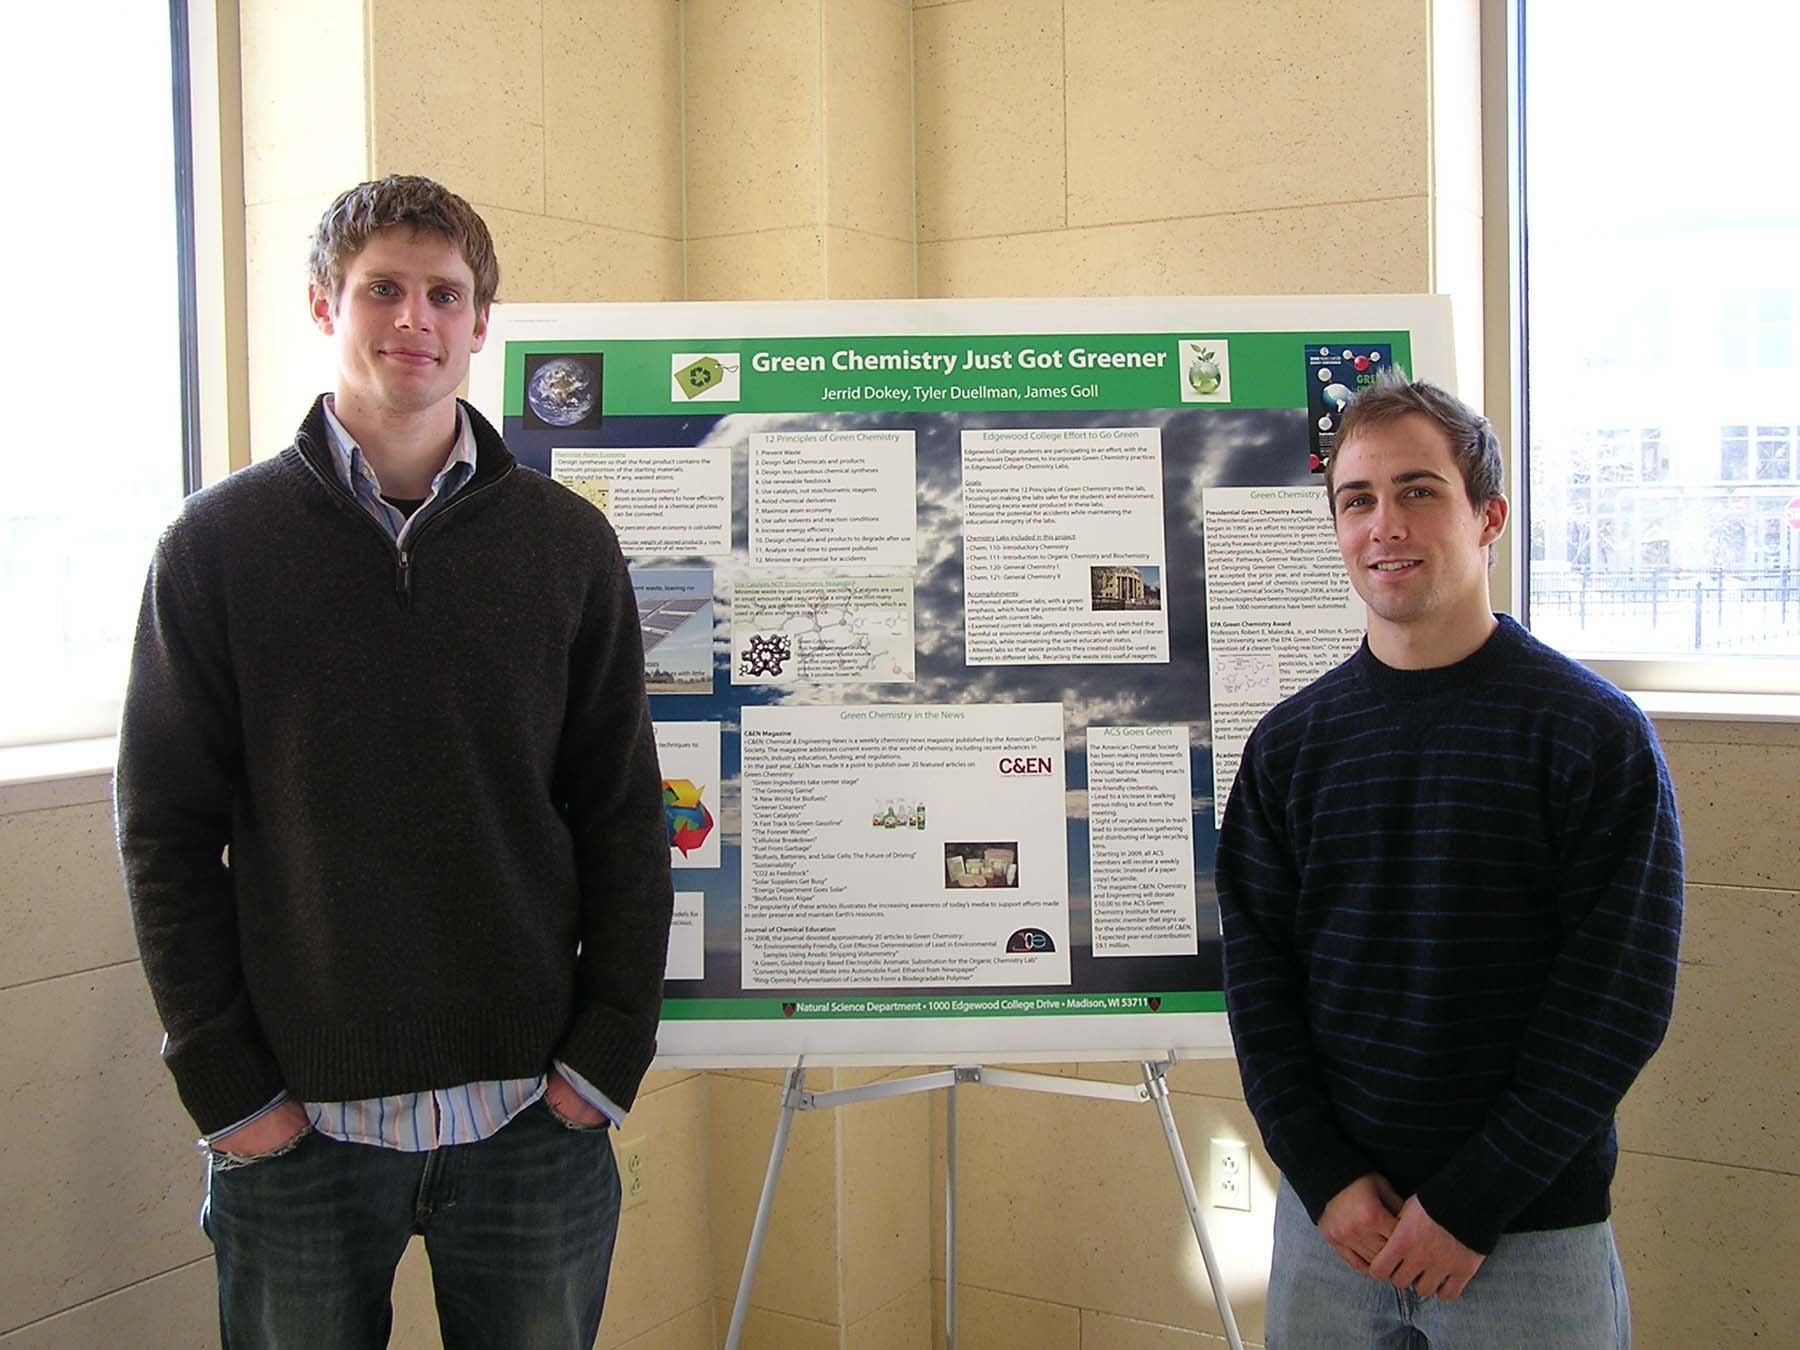 Edgewood Engaged Poster Session